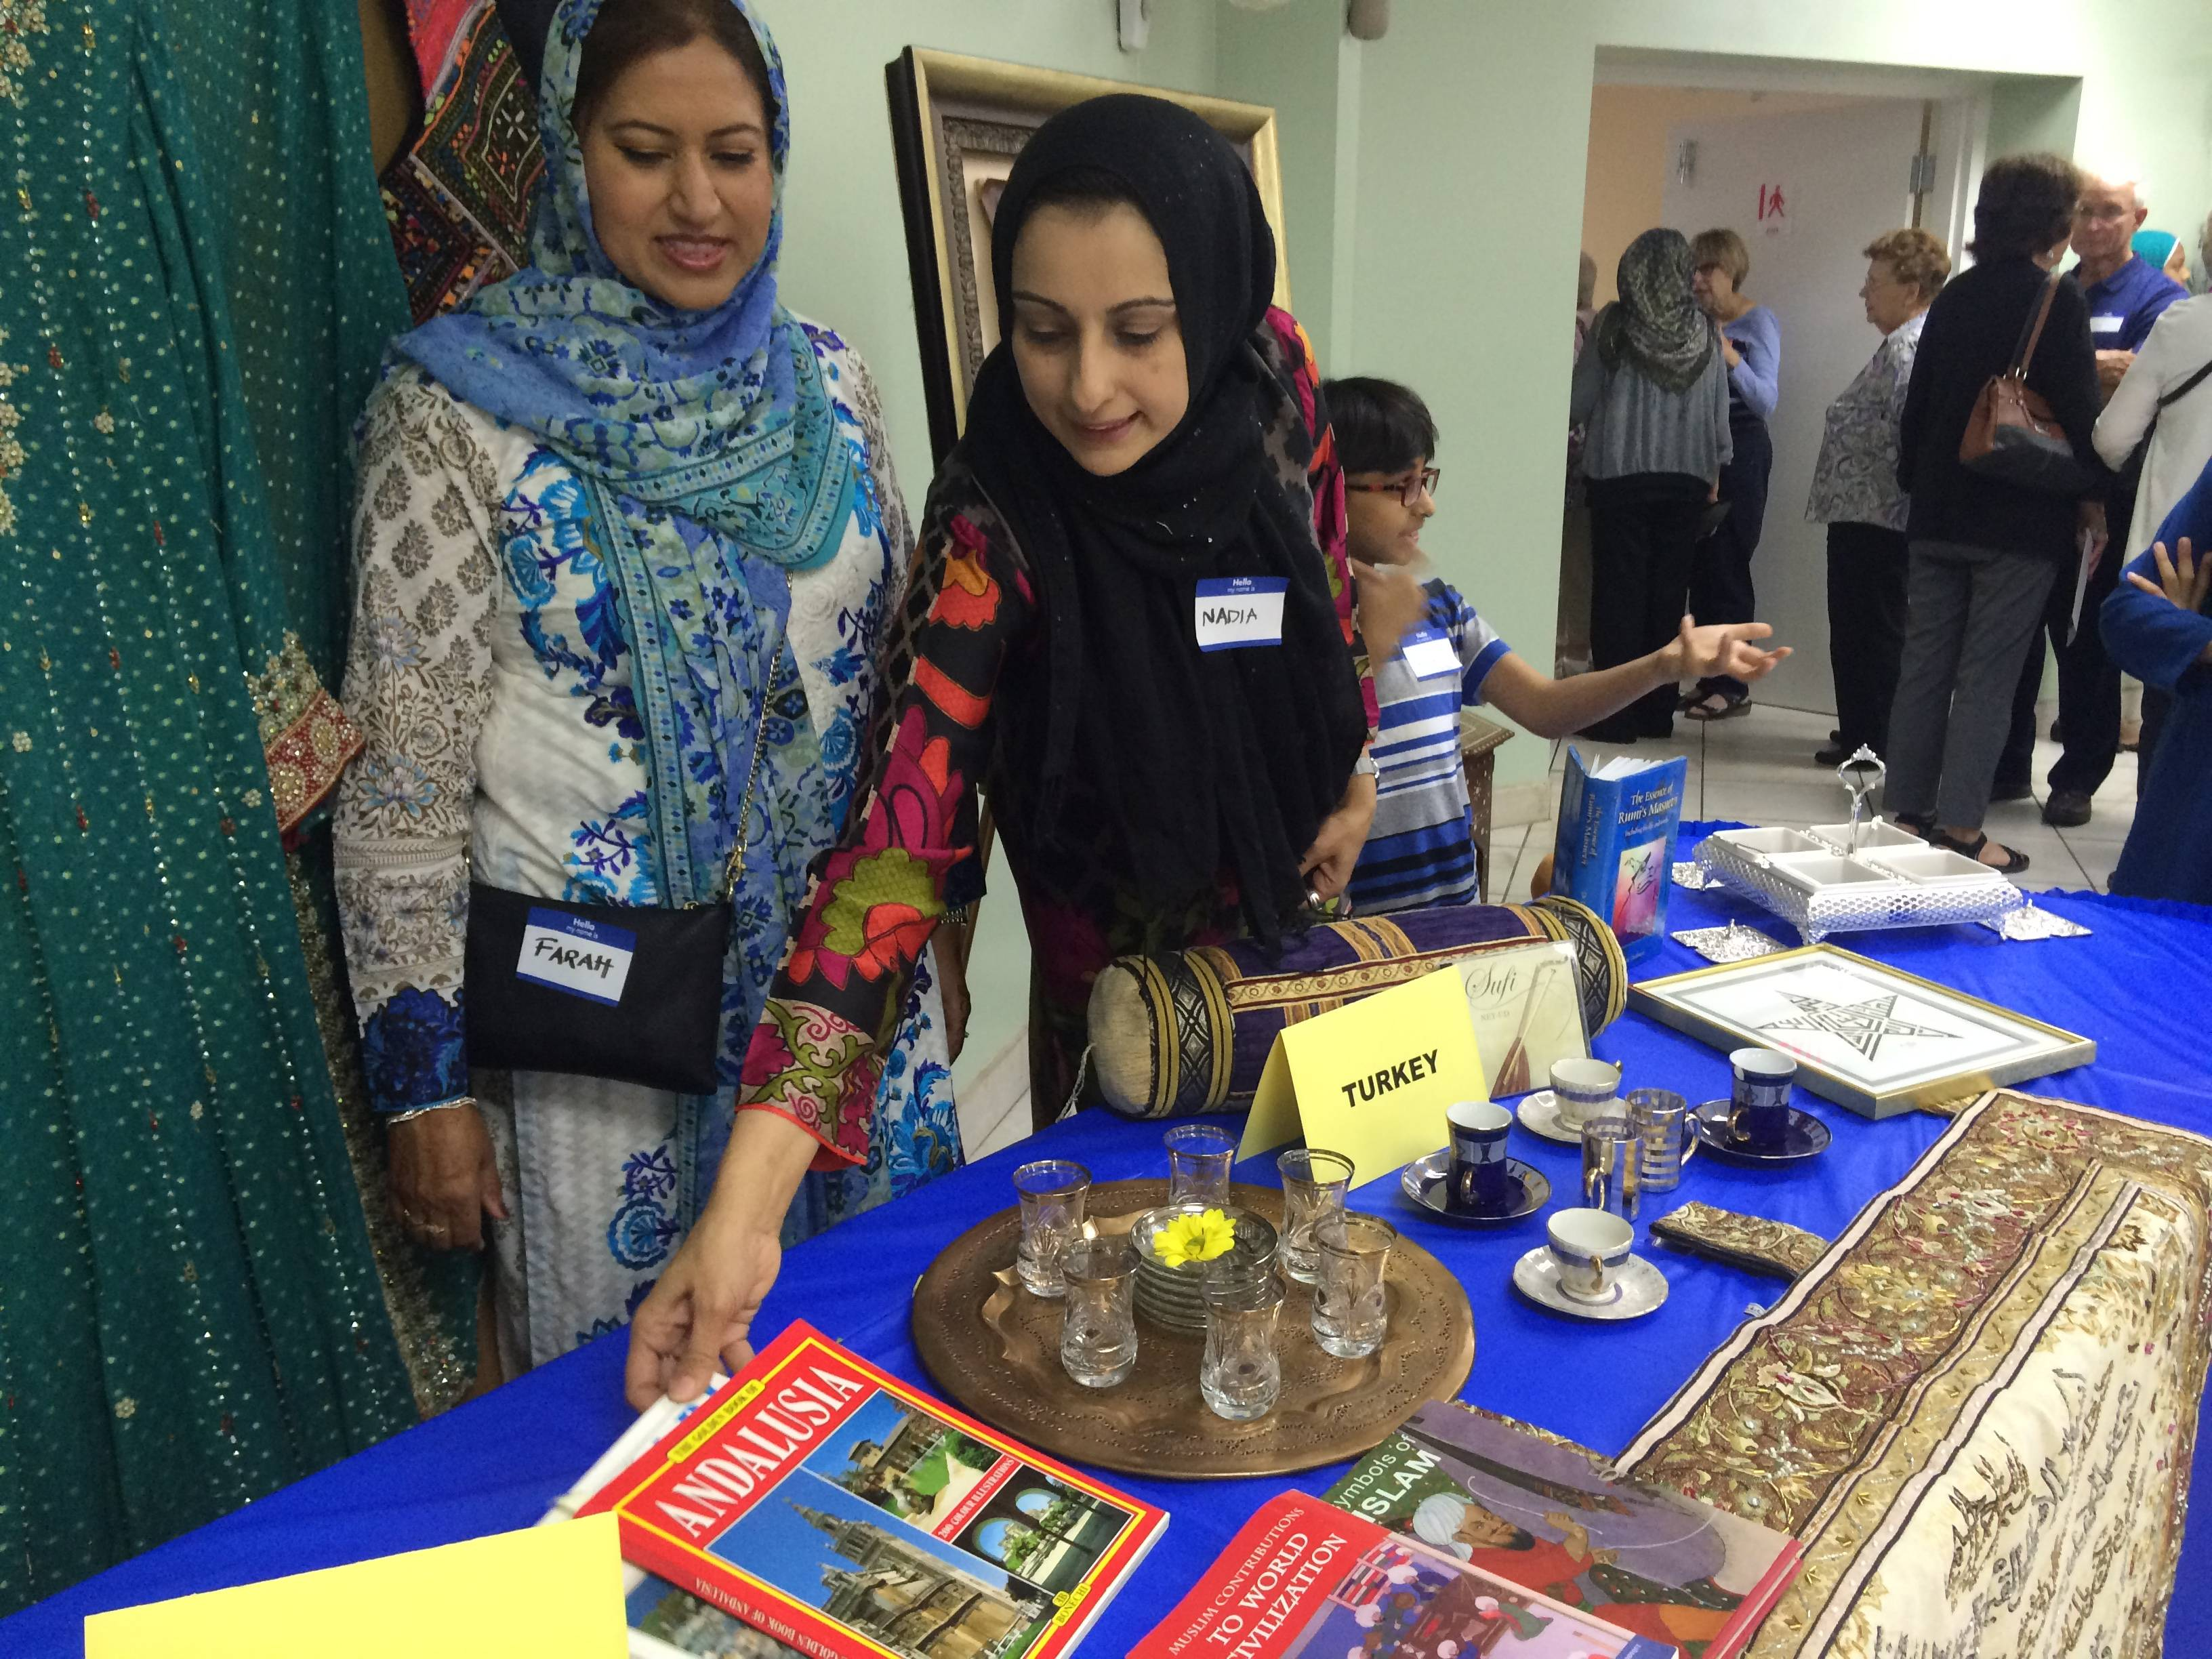 Questions about Islam abound at open house in Libertyville